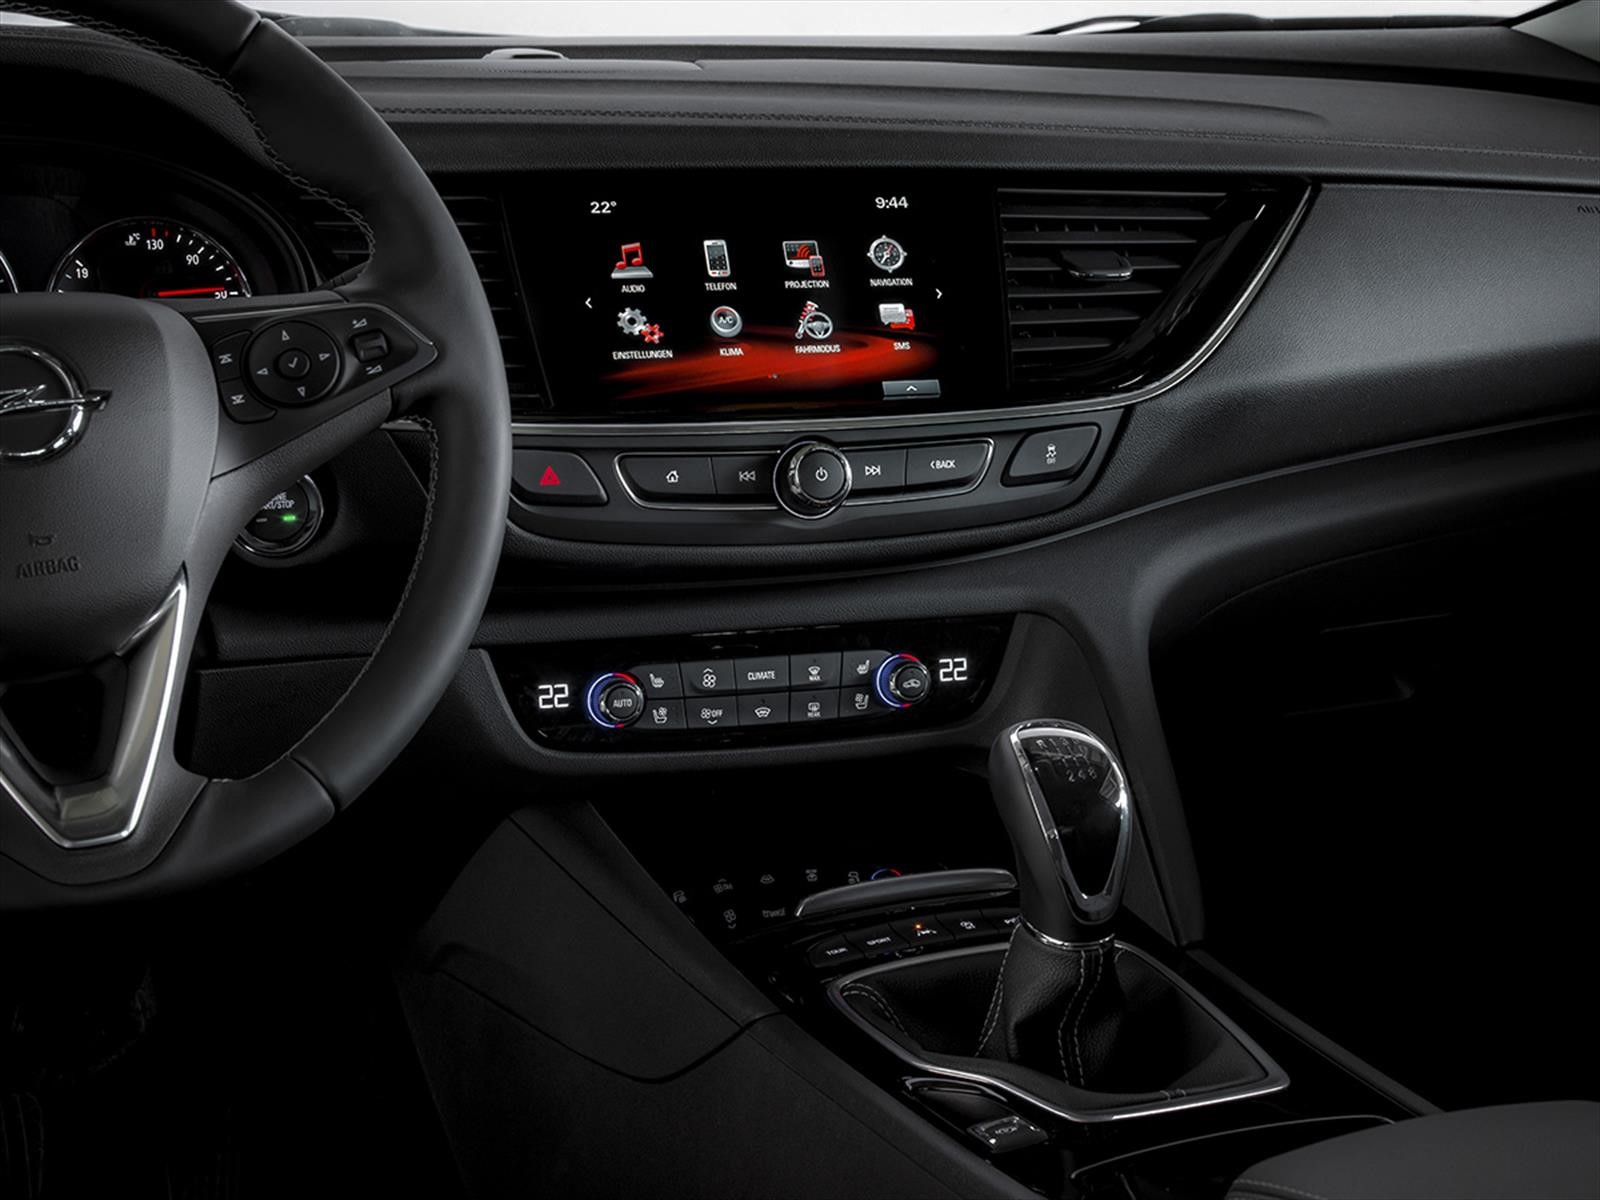 opel insignia grand sport 2018 el rey de los viajes largos. Black Bedroom Furniture Sets. Home Design Ideas